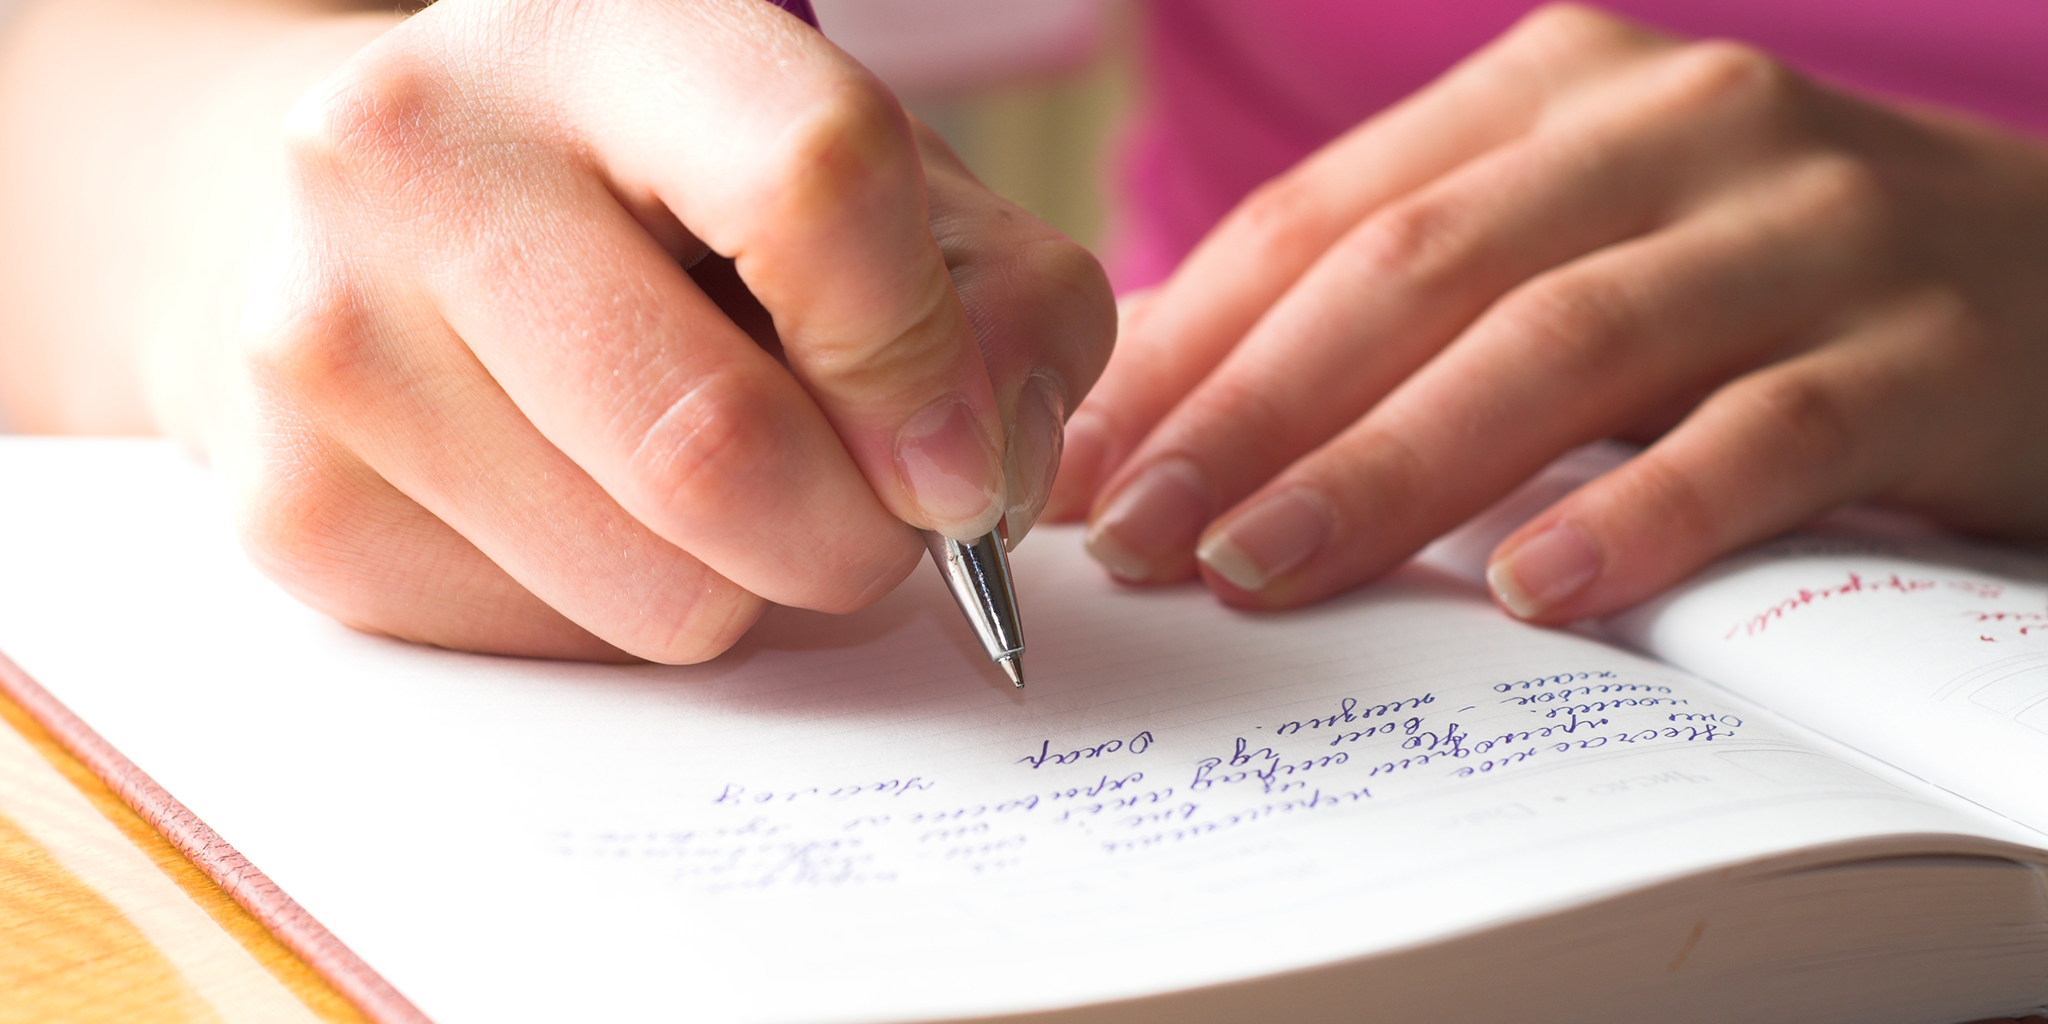 7 Useful Tips When Creating and Using a Caregiver's Diary